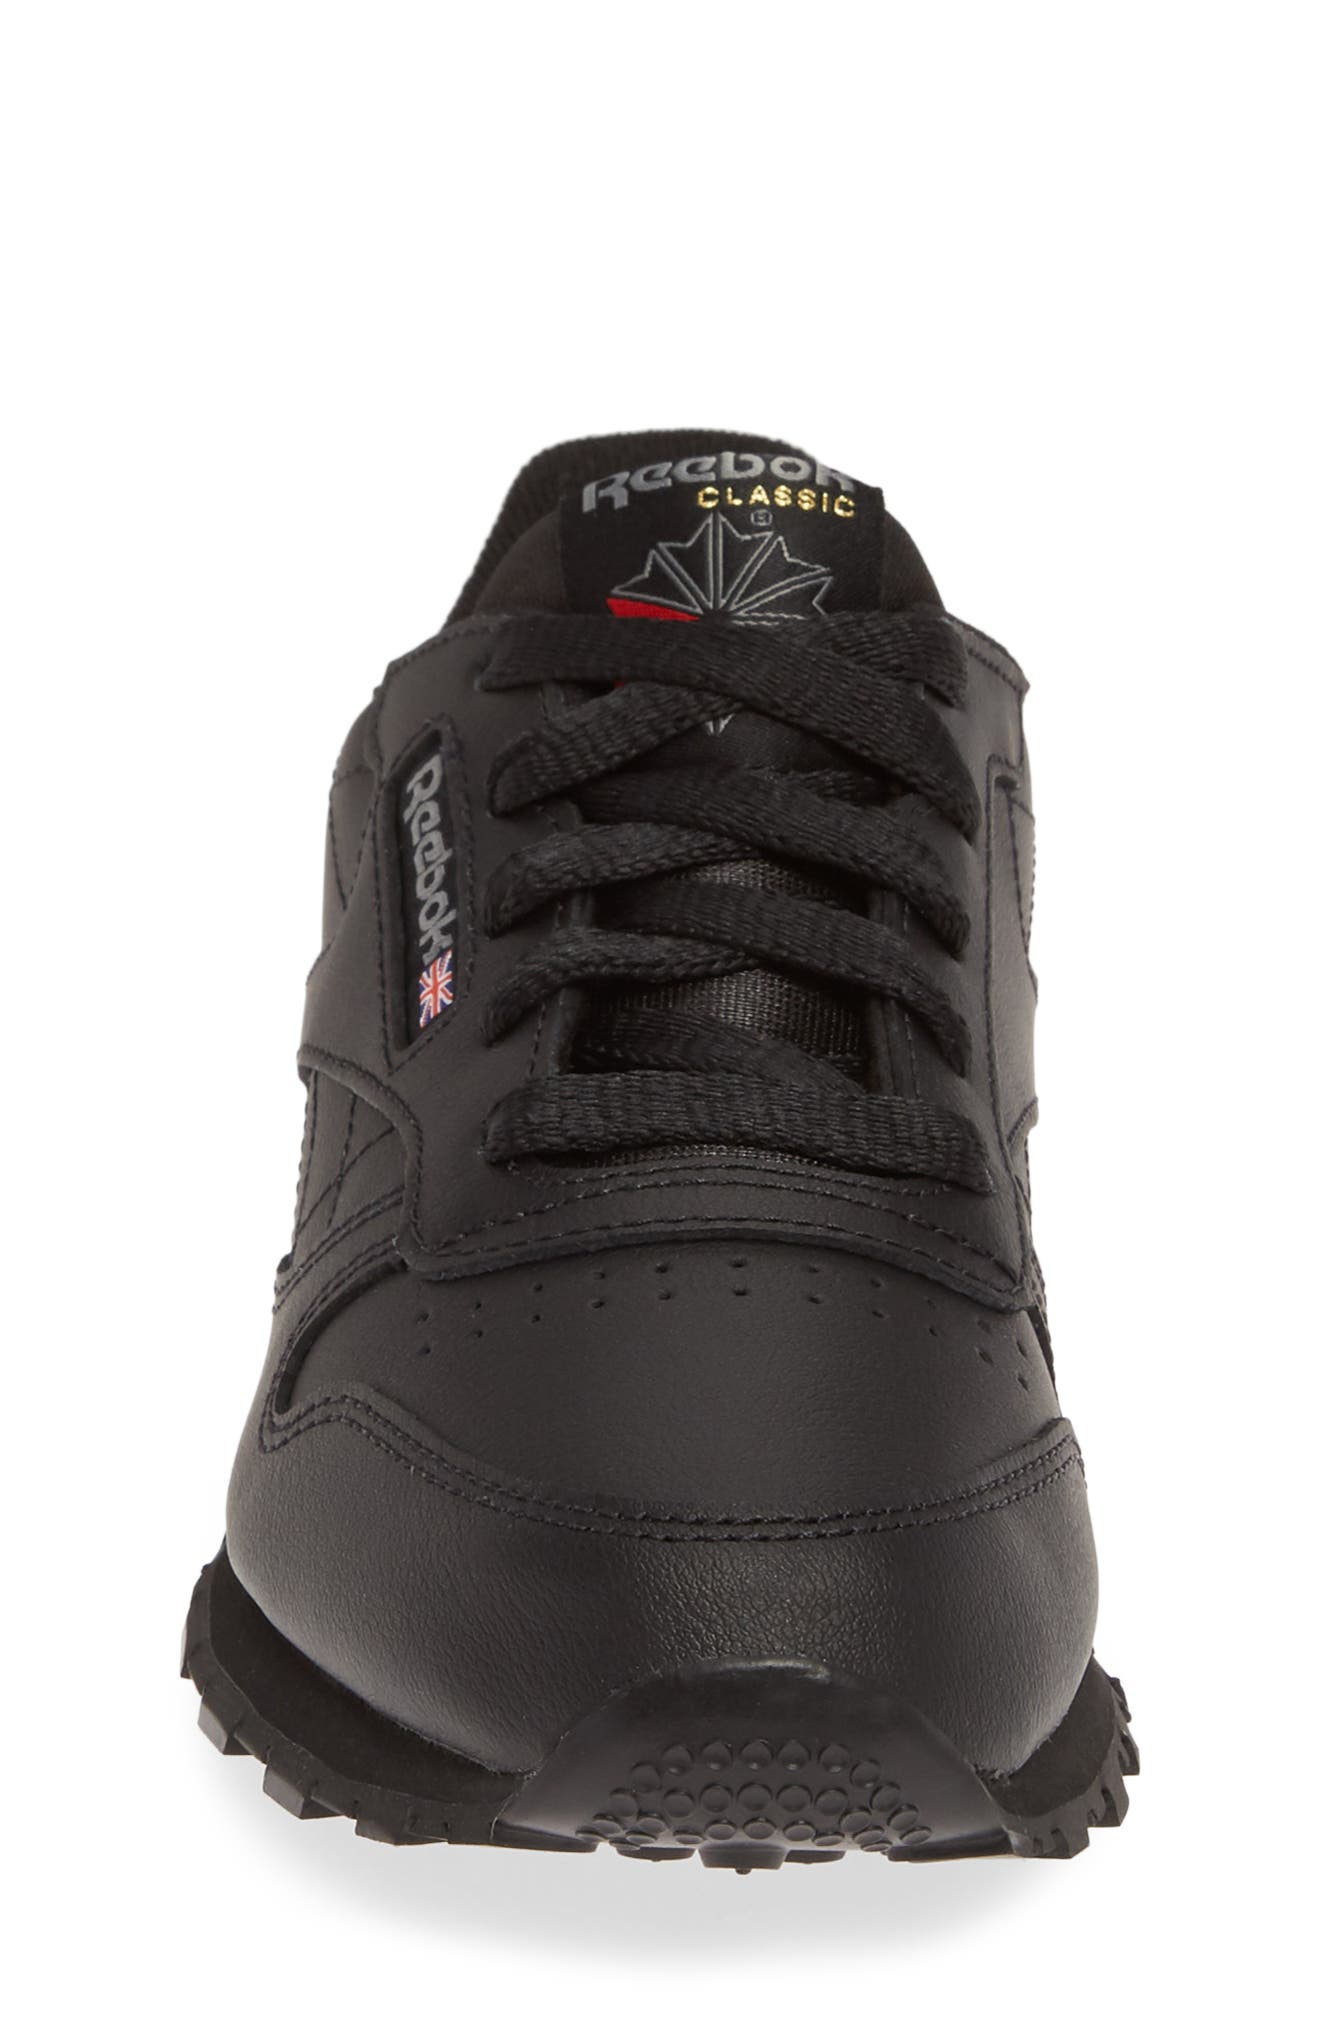 Classic Leather Sneaker,                             Alternate thumbnail 4, color,                             001